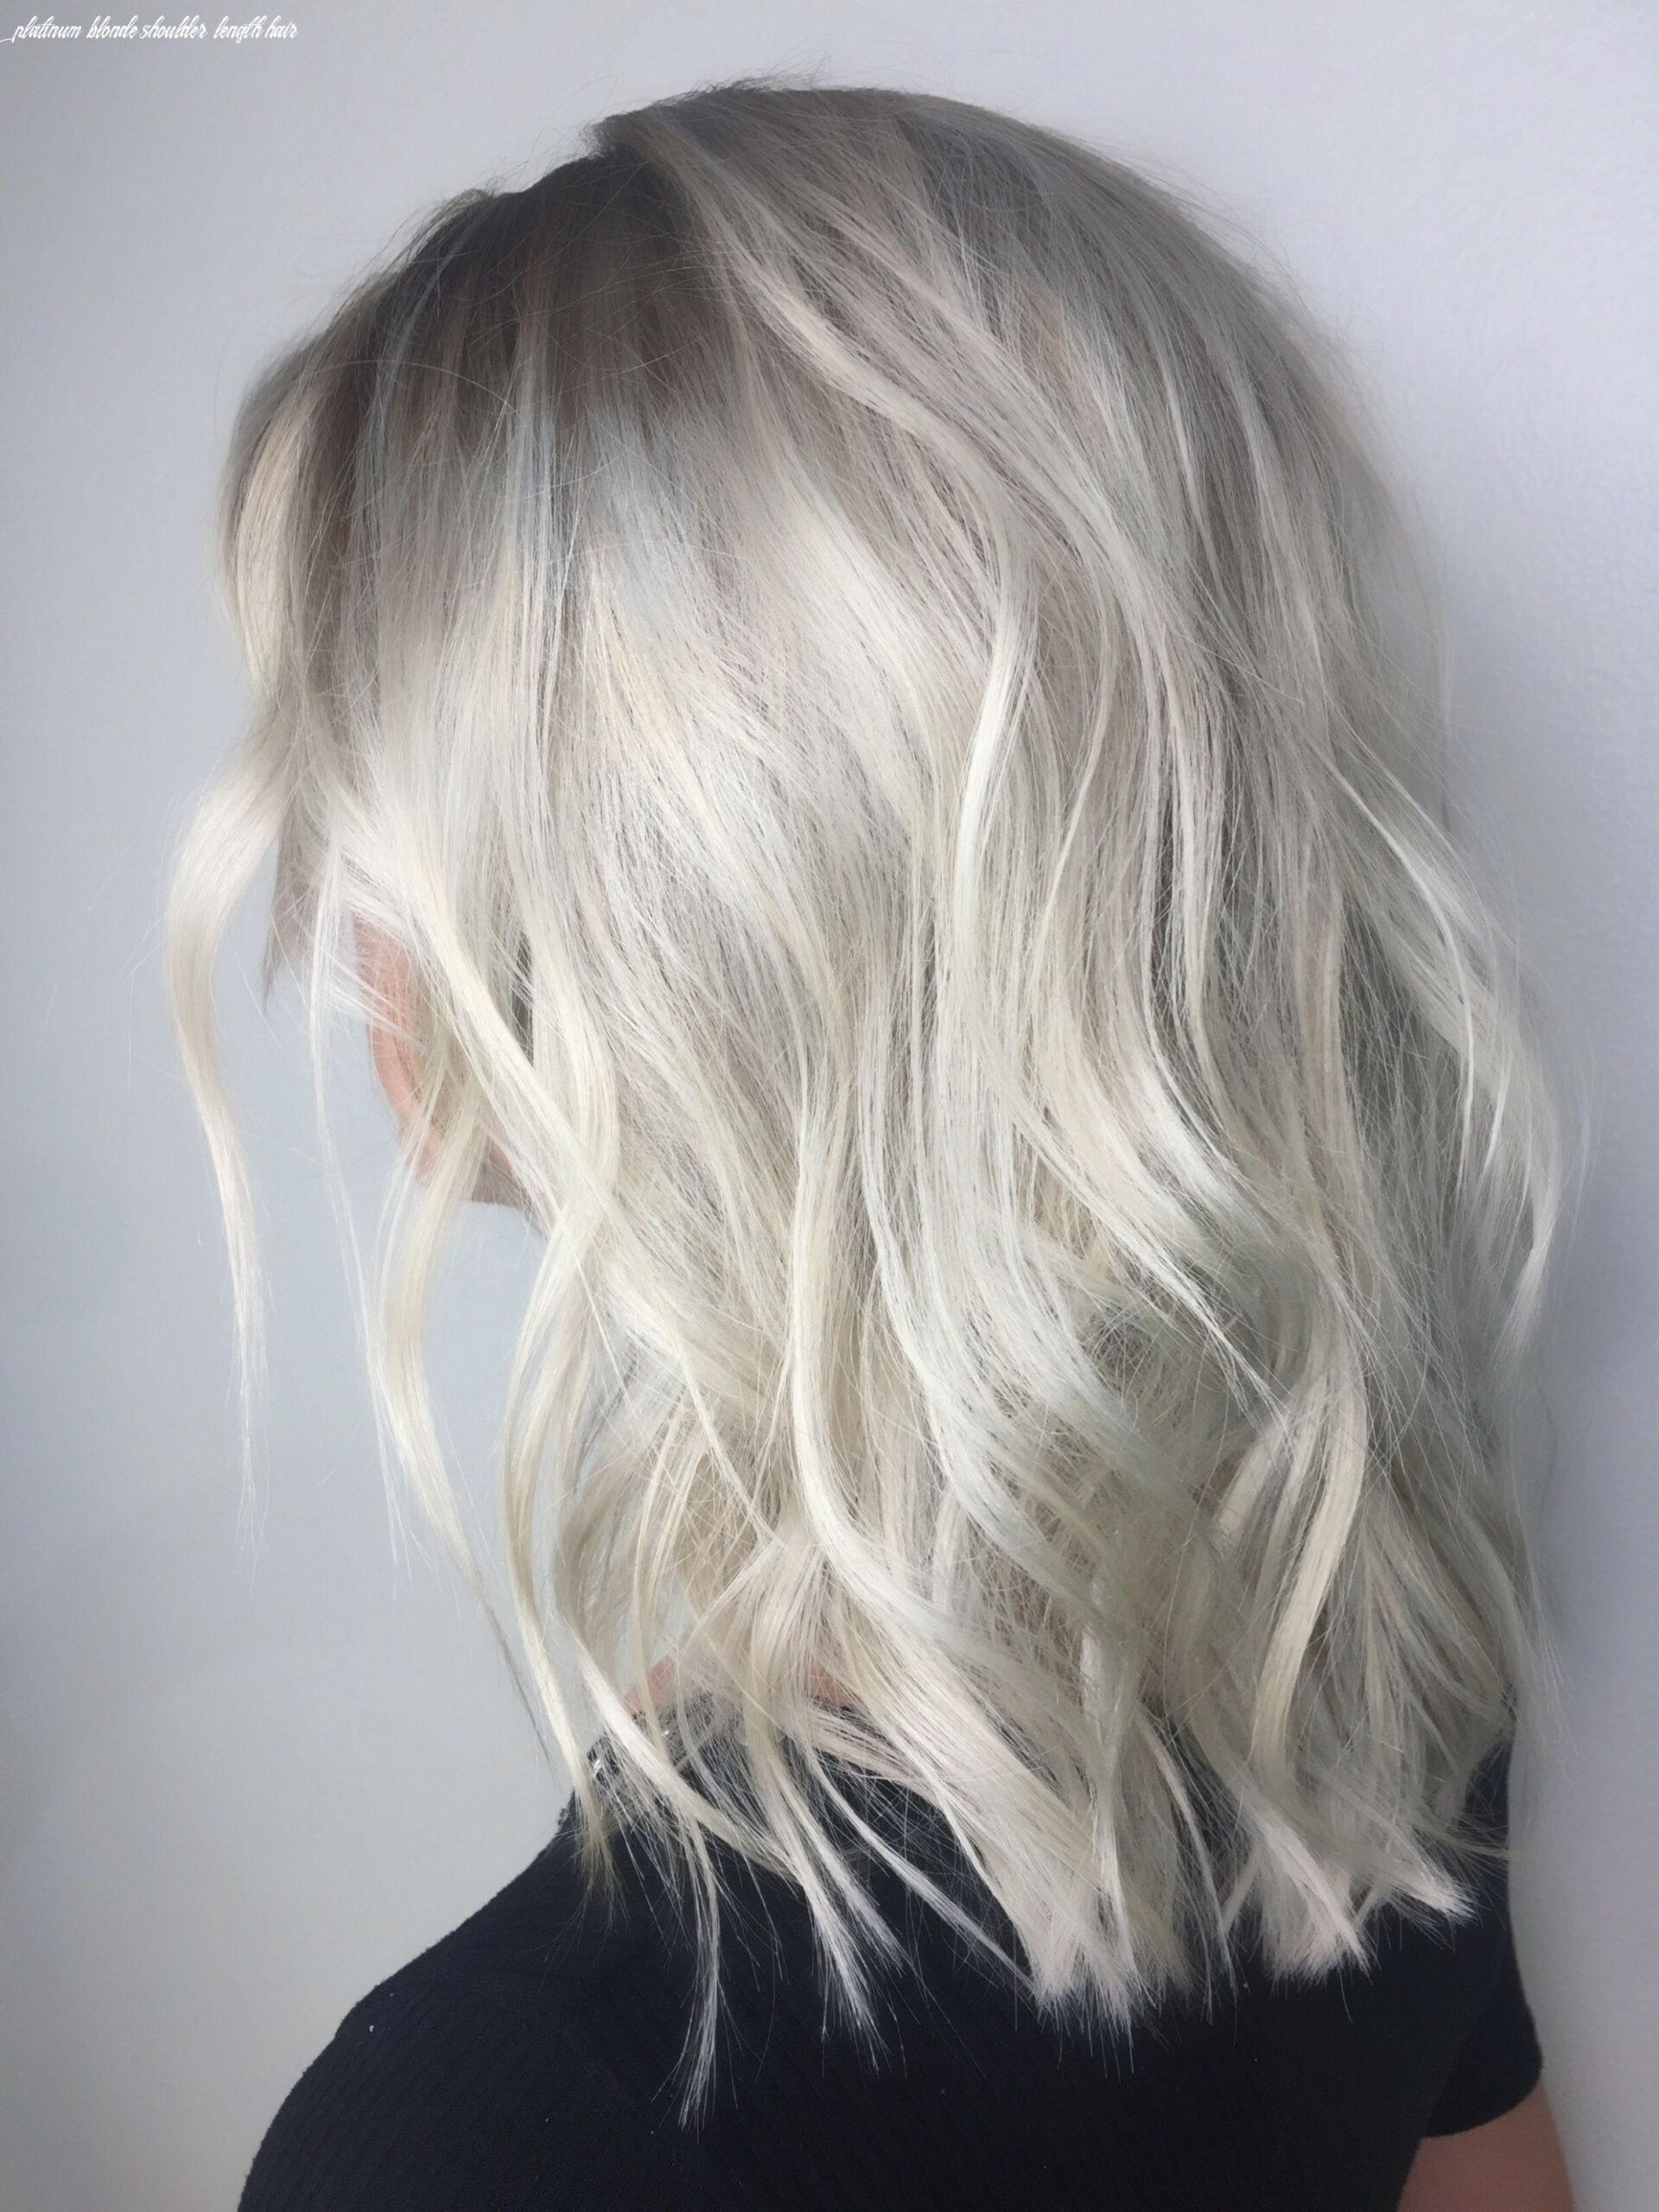 Medium length , platinum ice blonde with shadowed roots and lived